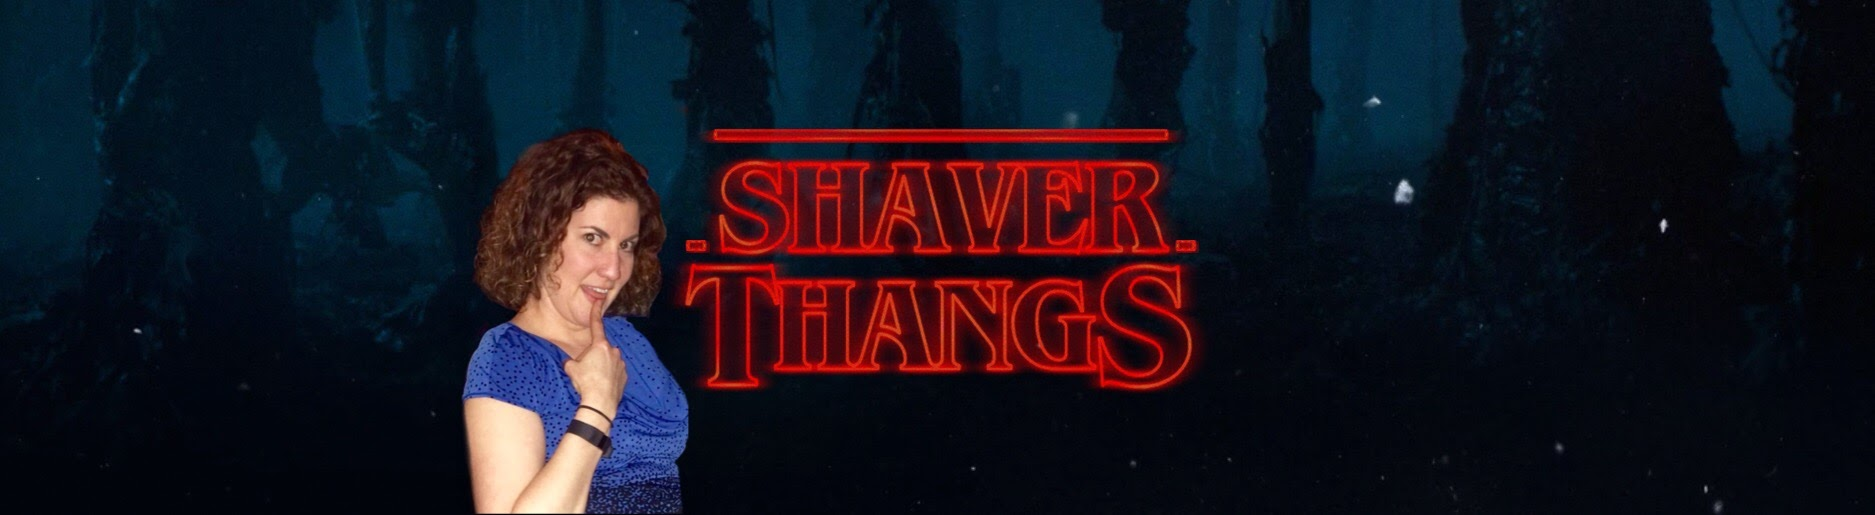 Shaver Thangs banner